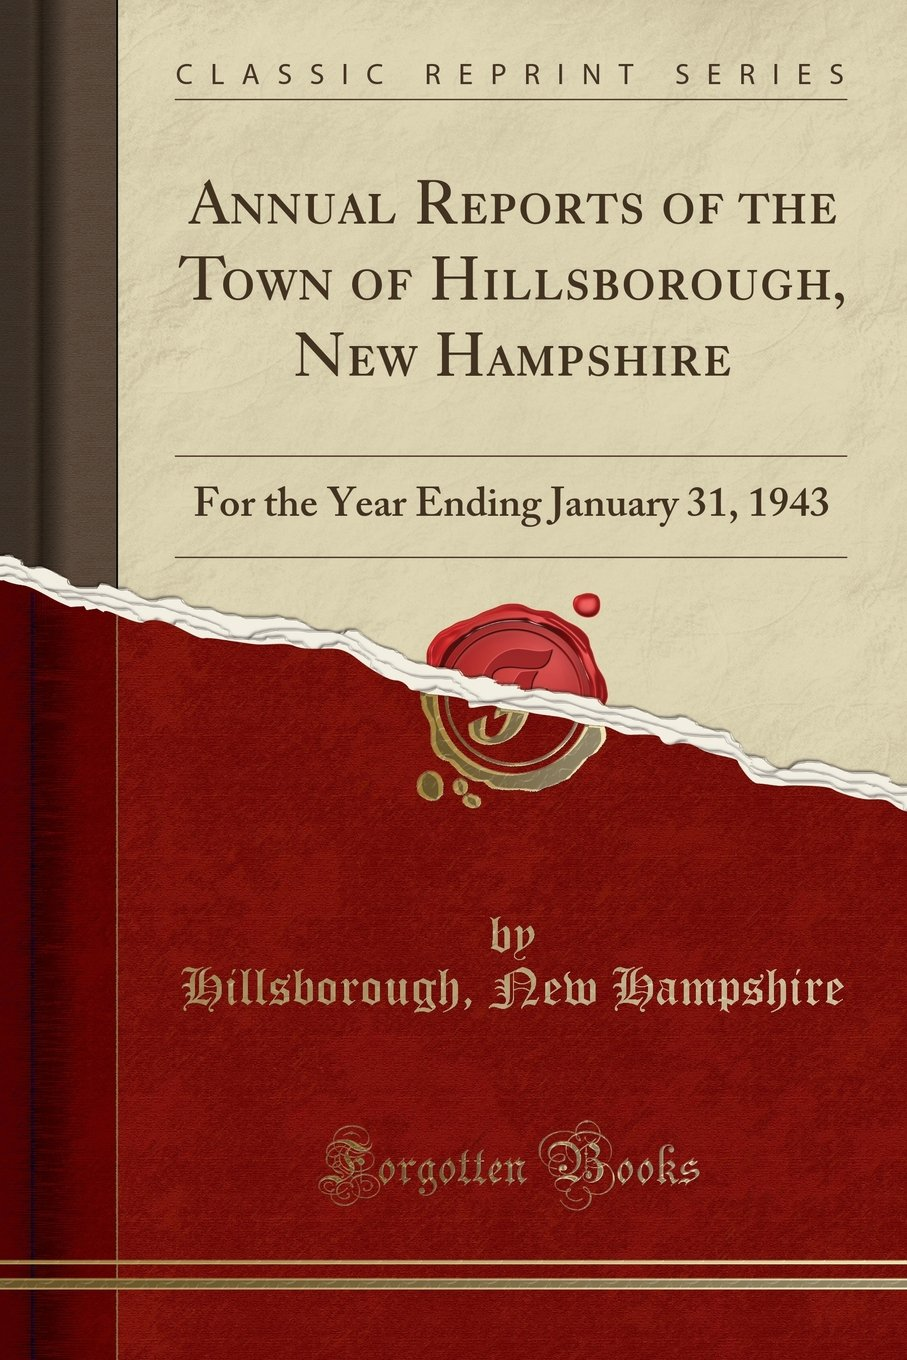 Annual Reports of the Town of Hillsborough, New Hampshire: For the Year Ending January 31, 1943 (Classic Reprint) ebook